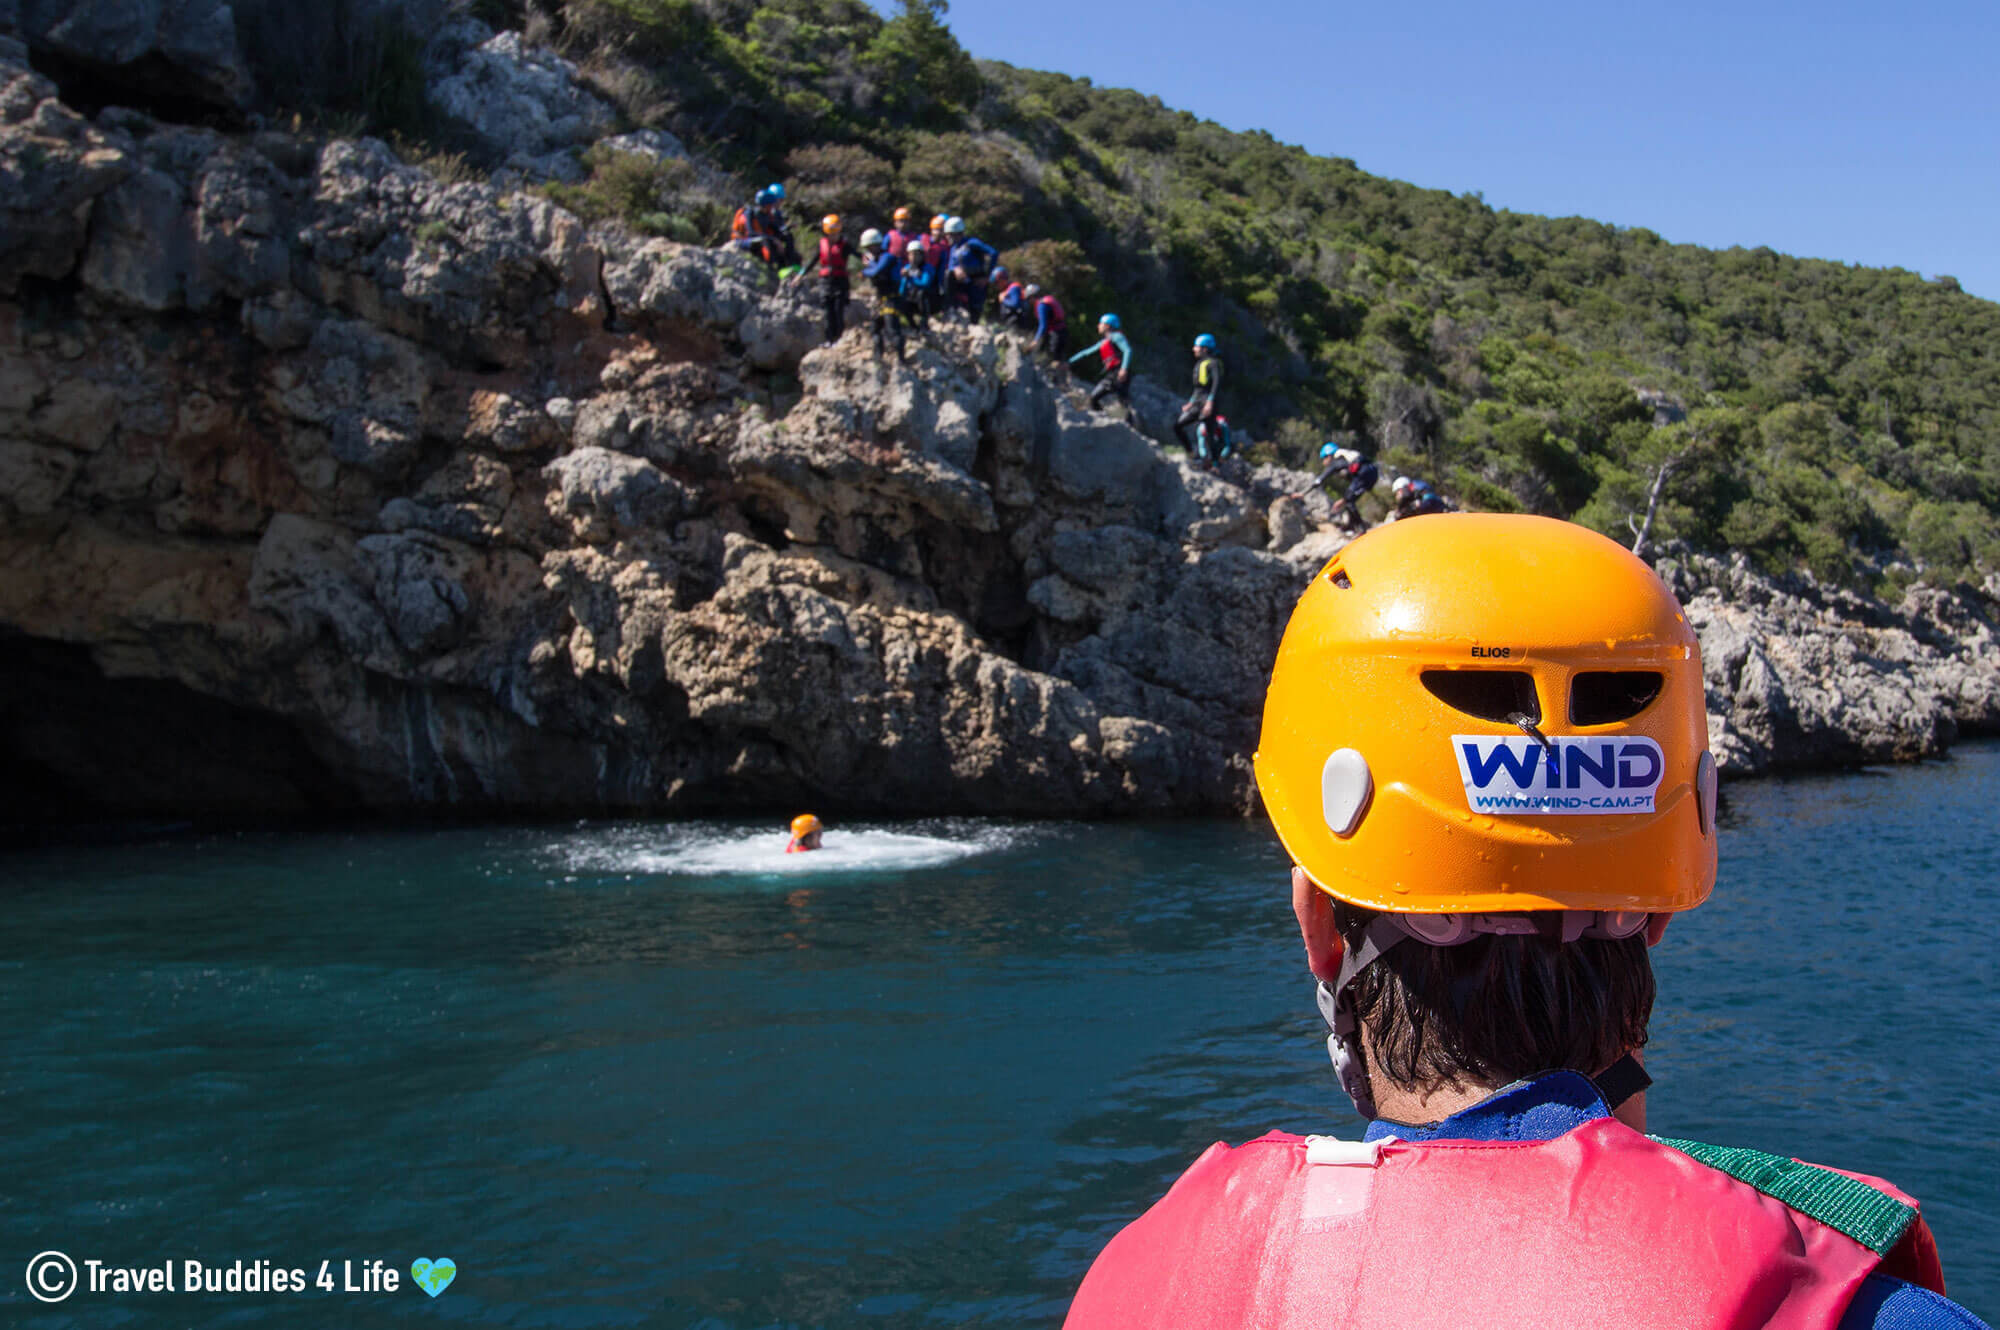 WIND Helmet from the Boat Watching Someone Coasteering in Portugal